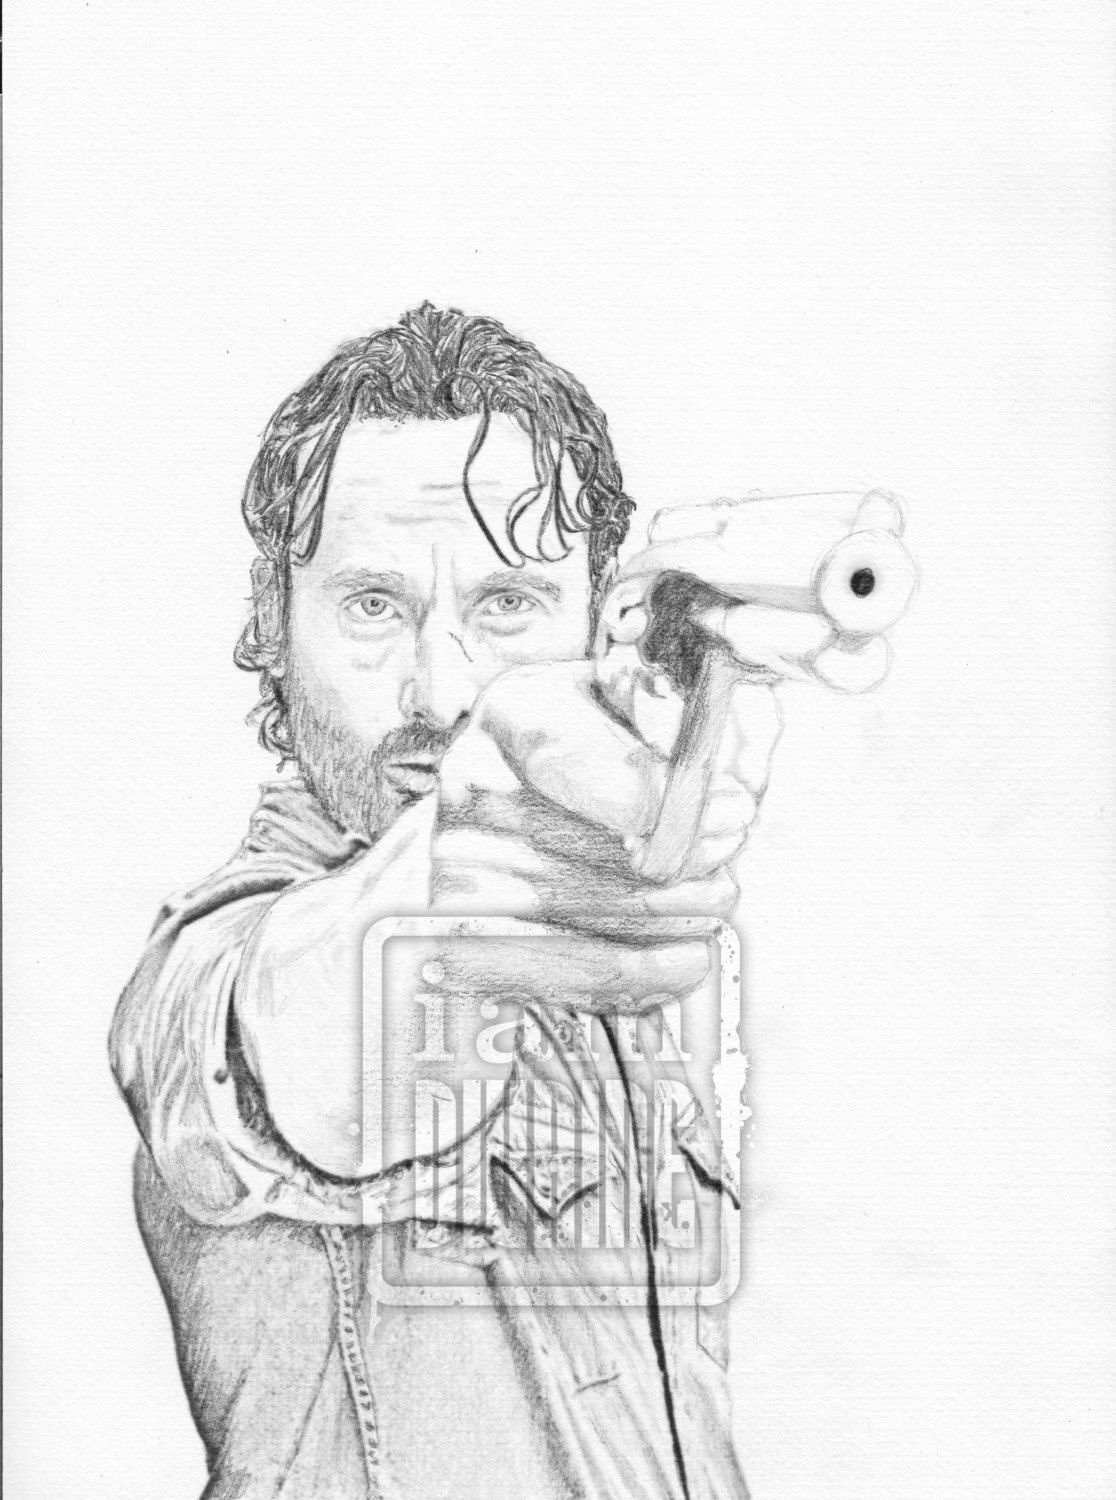 Rick Grimes Pencil Drawing The Walking Dead Fan Art Print By